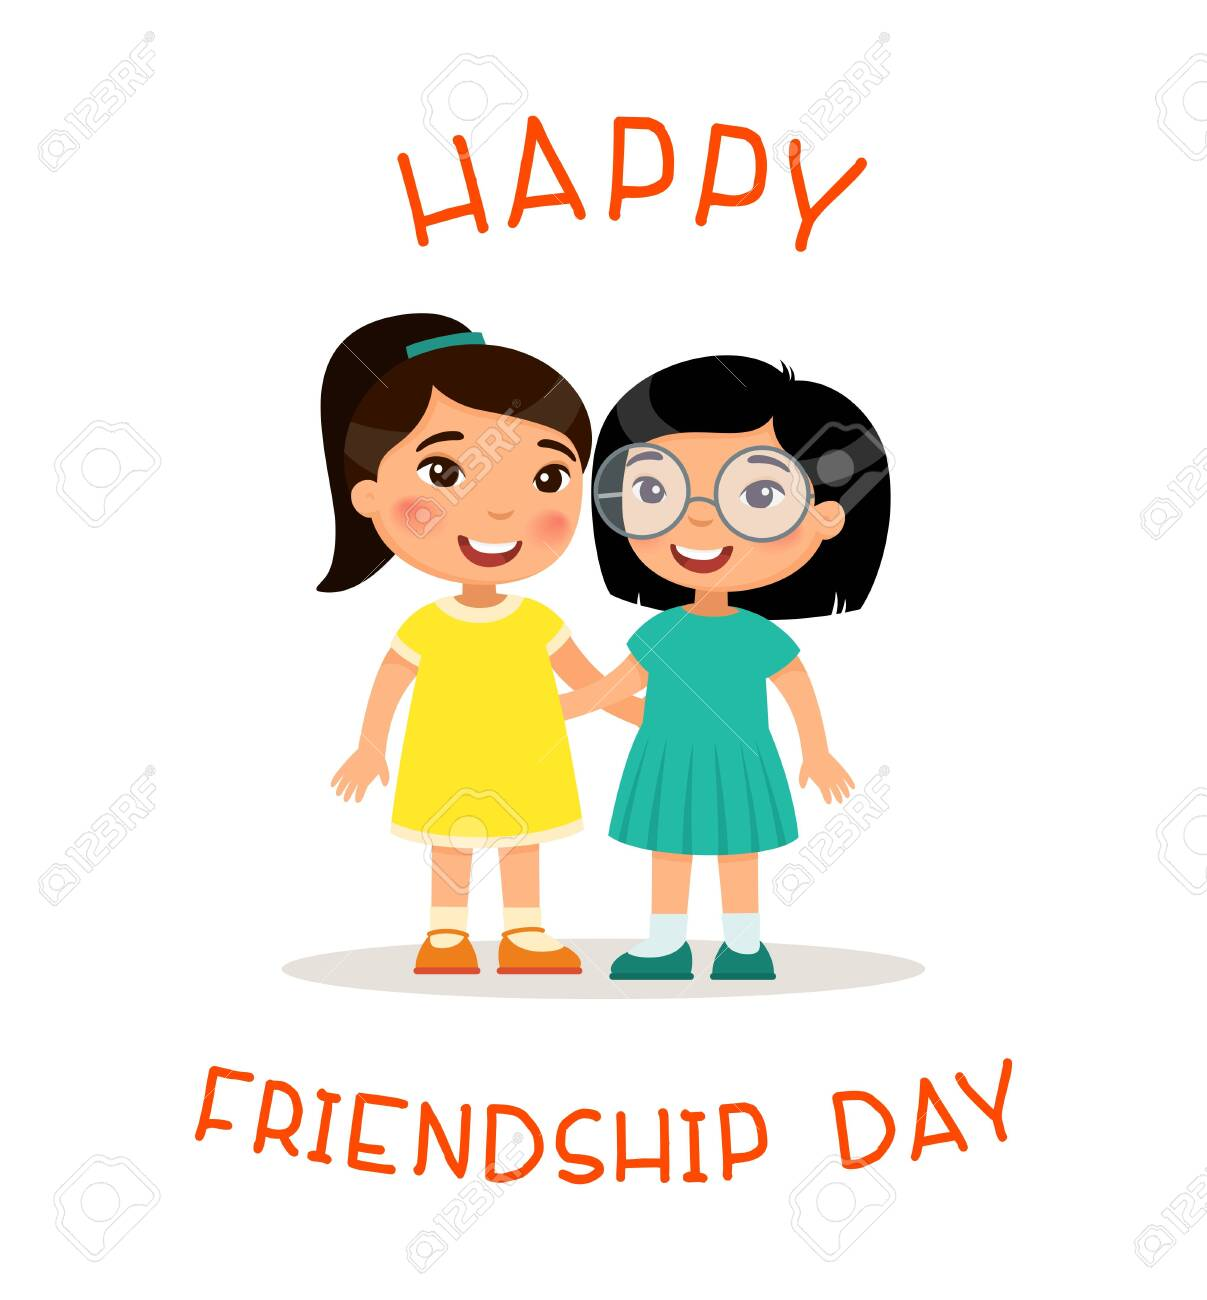 Happy Friendship Day Two Cute Little Asian Girls Hugging Funny Royalty Free Cliparts Vectors And Stock Illustration Image 126876595